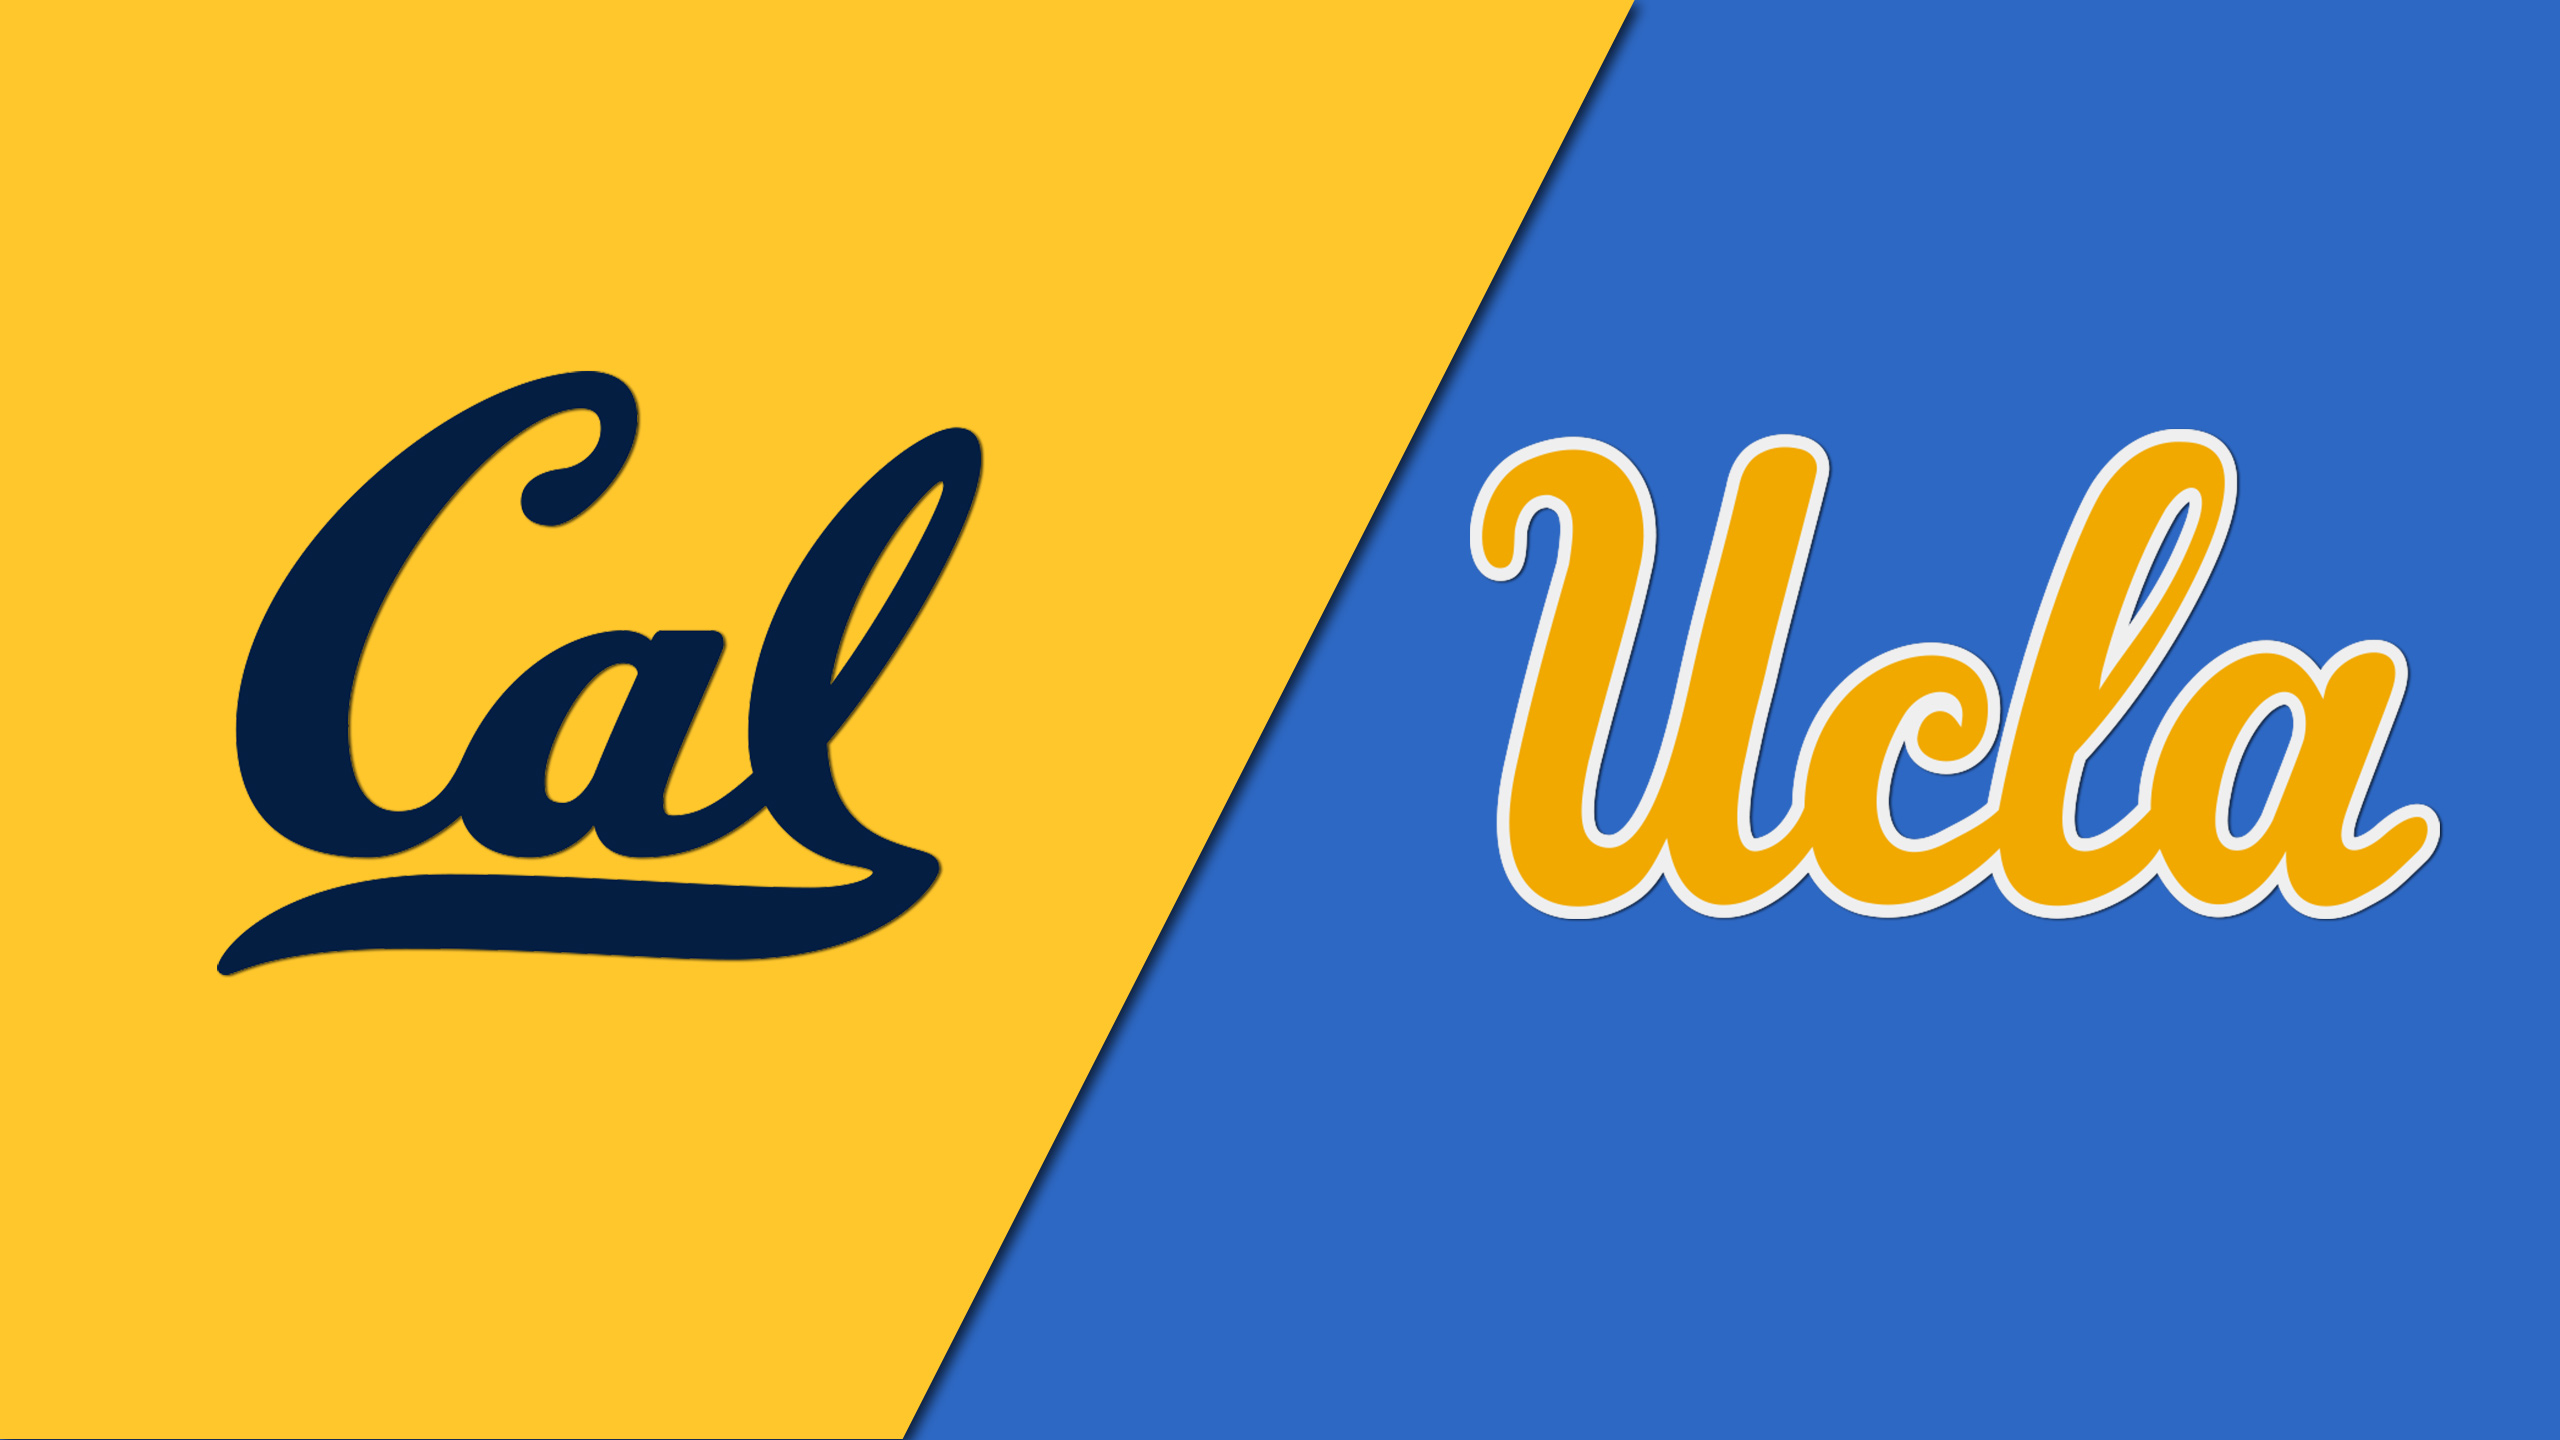 California Golden Bears vs. UCLA Bruins (re-air)